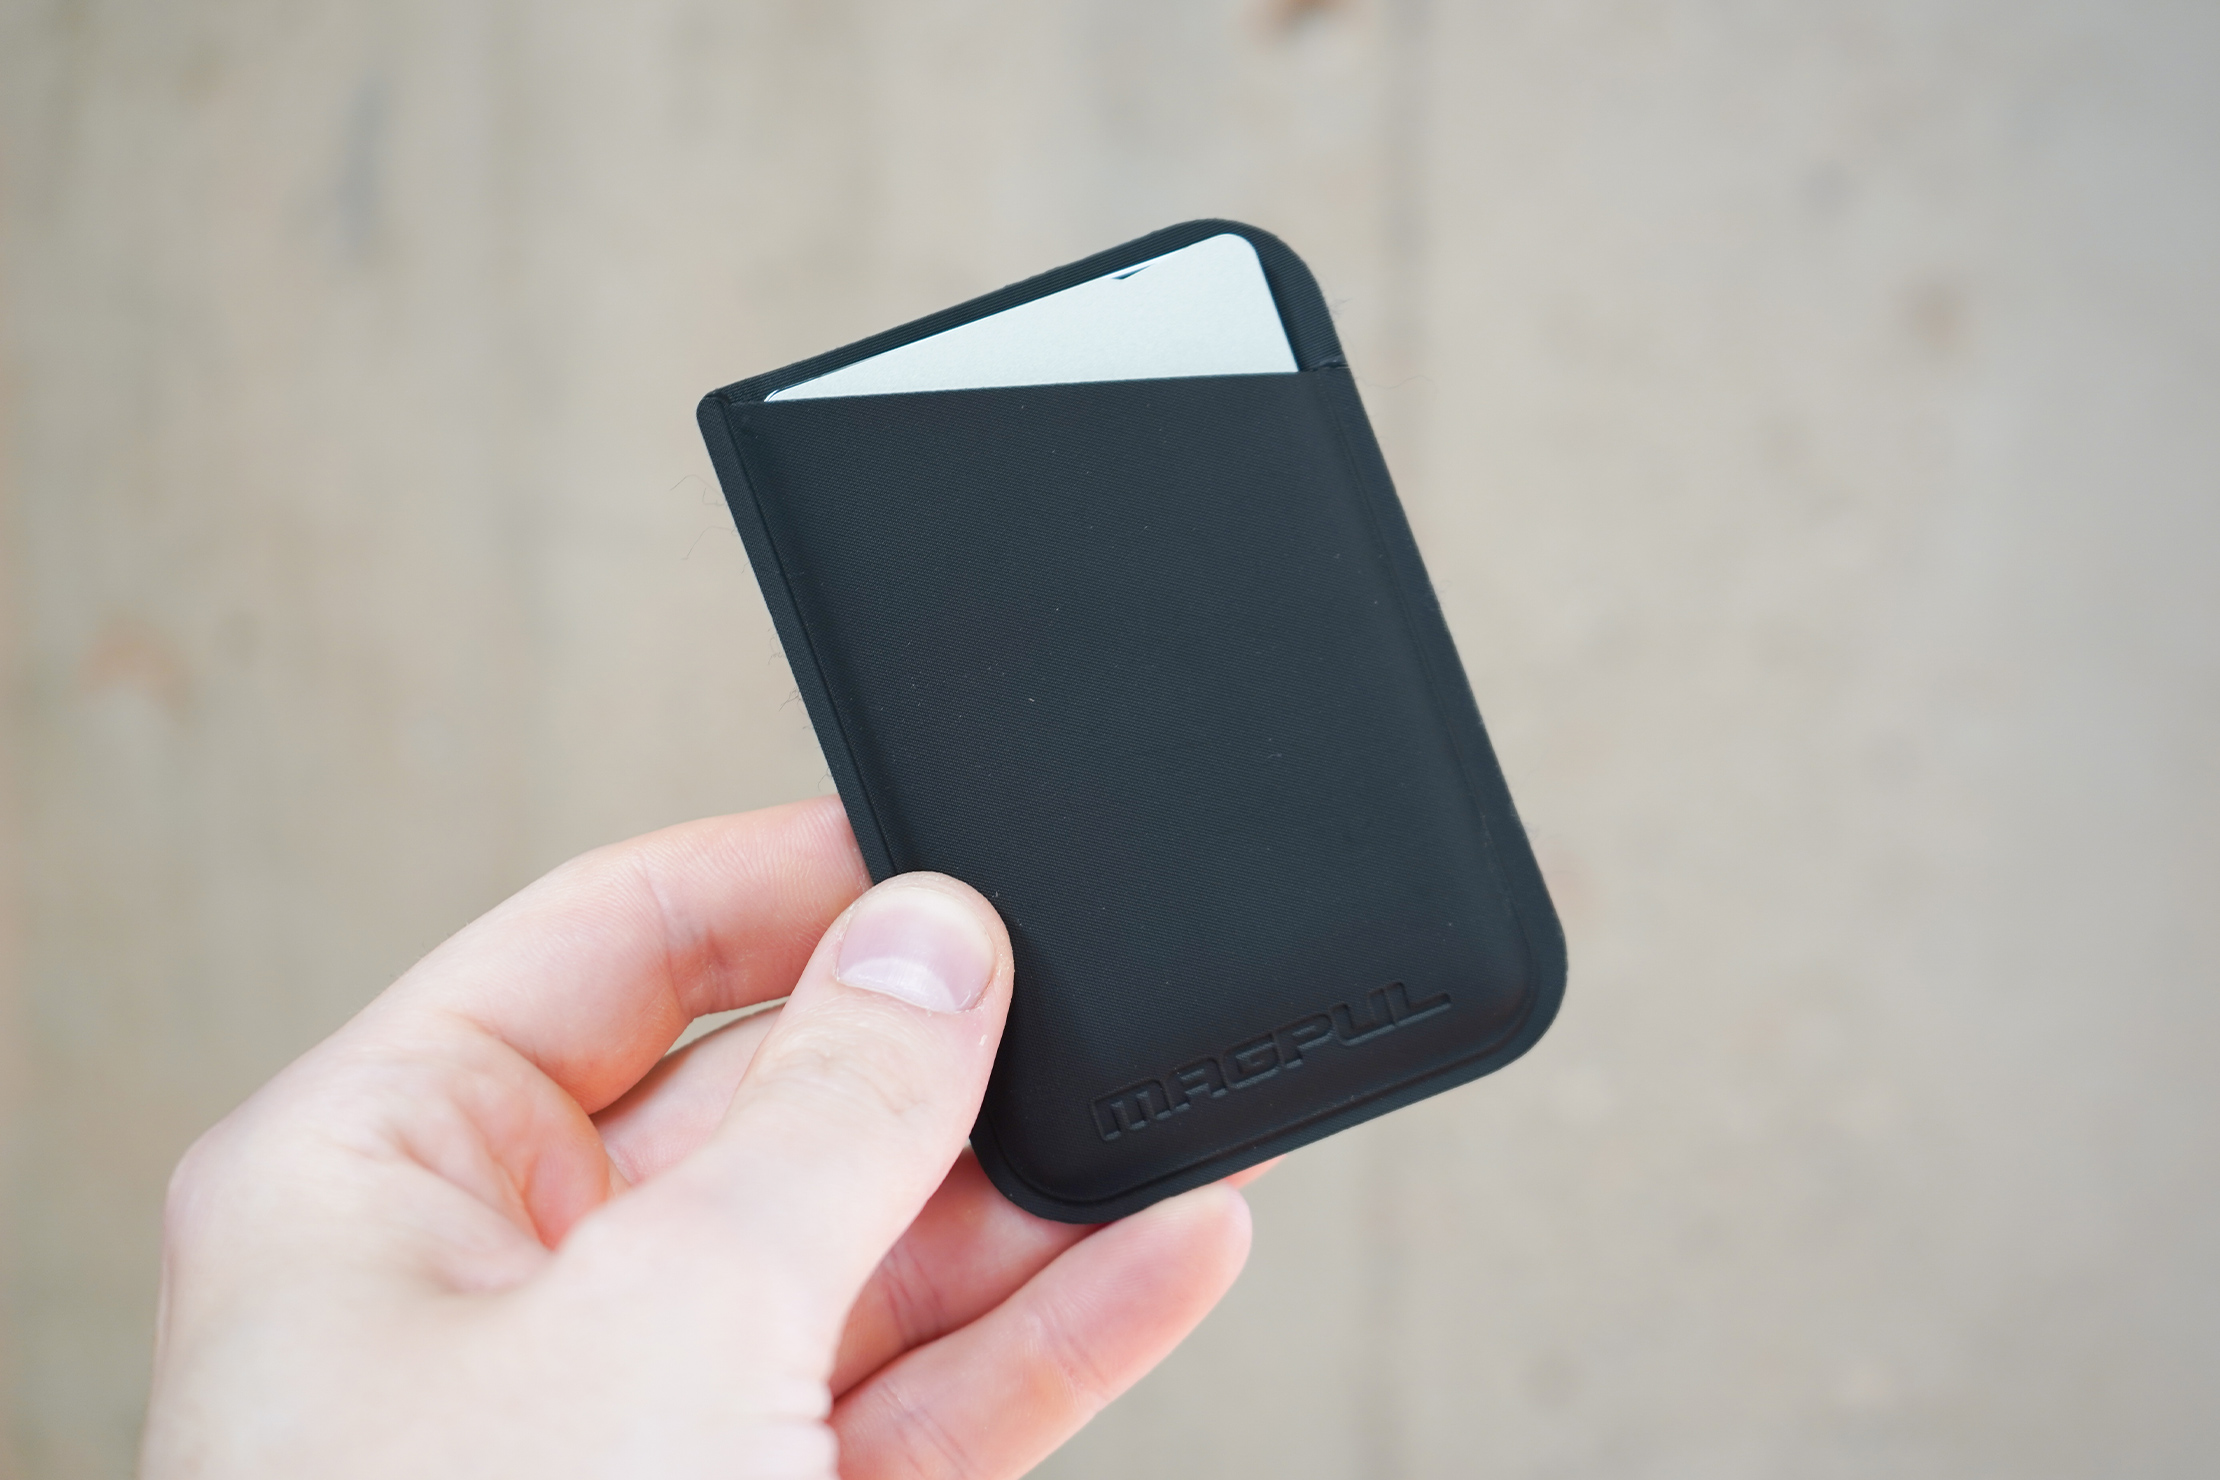 Magpul DAKA Micro Wallet   It's a slim wallet for a streamlined carry.